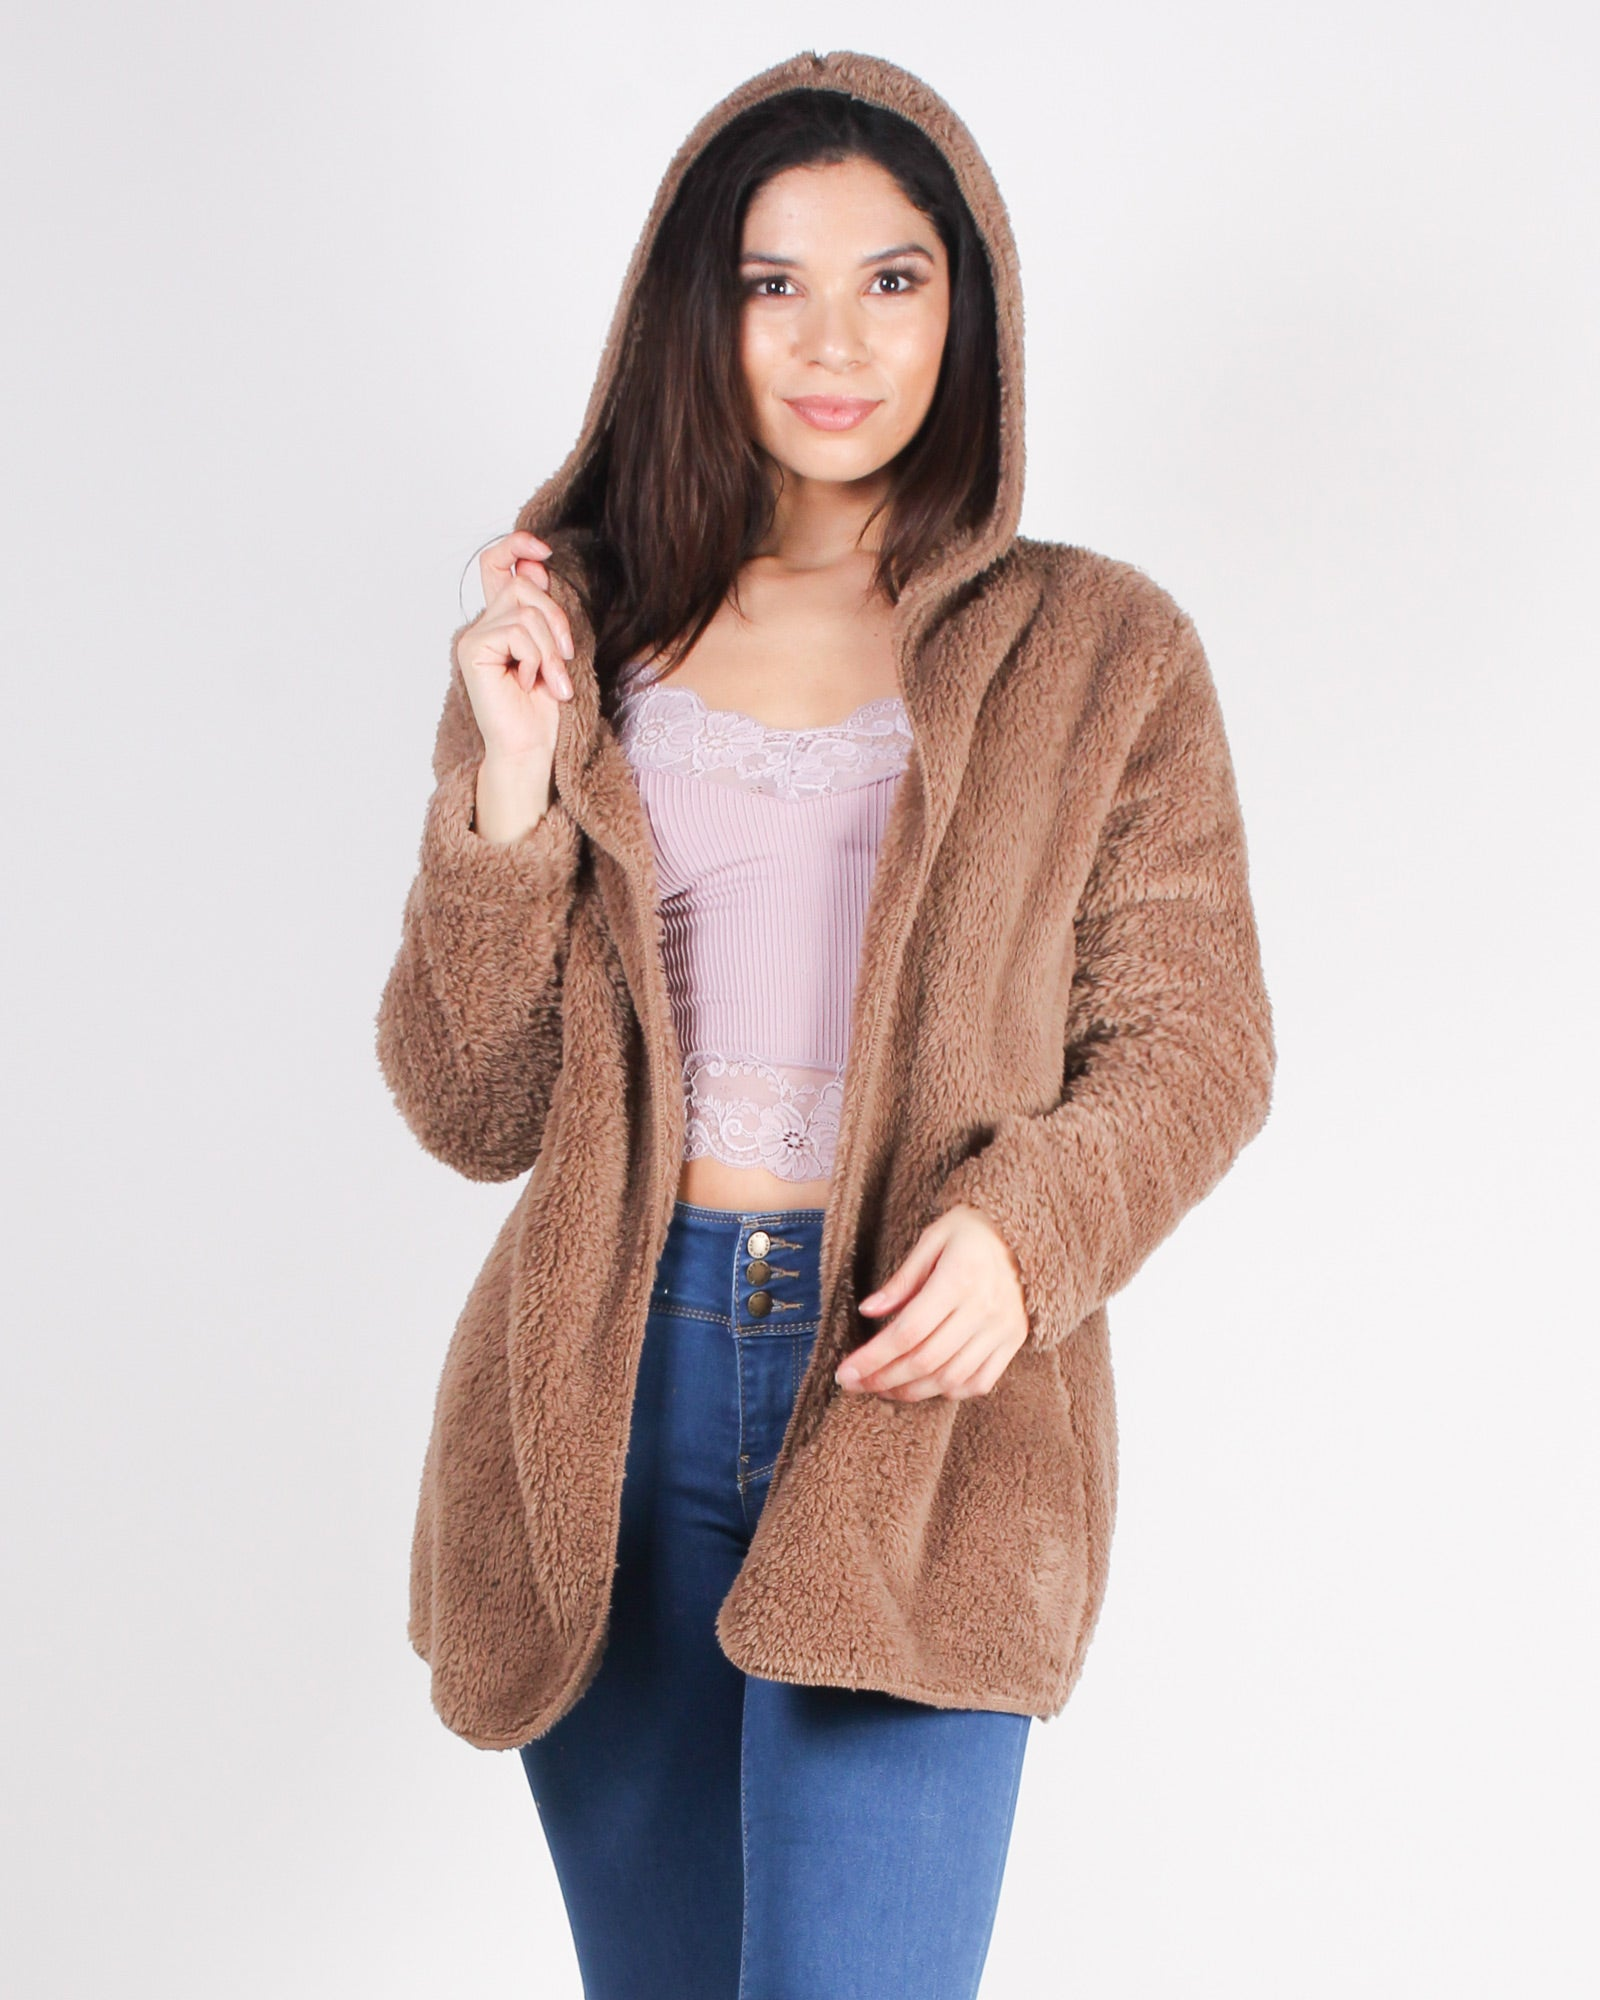 Fashion Q Shop Q Be You. Do You. Fur You Jacket (Mocha) CLJ0002